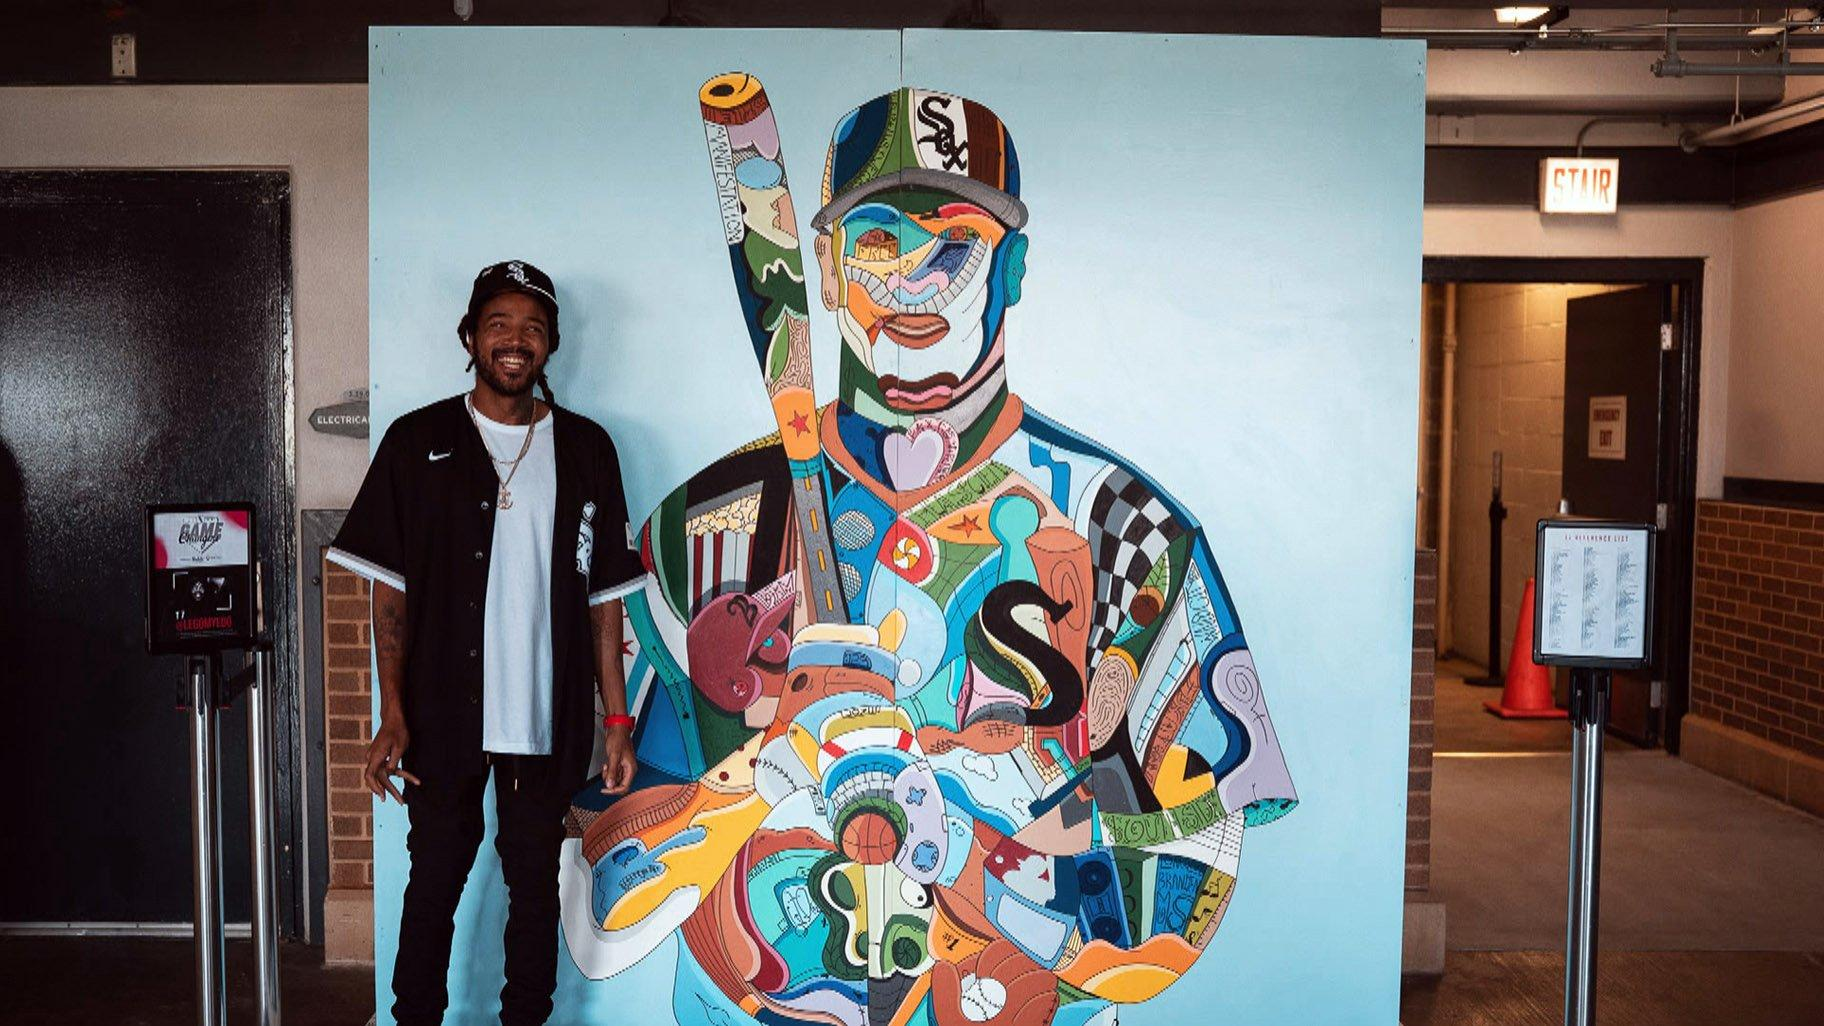 Just like Tim Anderson's exuberant style of play, Edo's bright, boisterous style of art draws people in. (WTTW News)